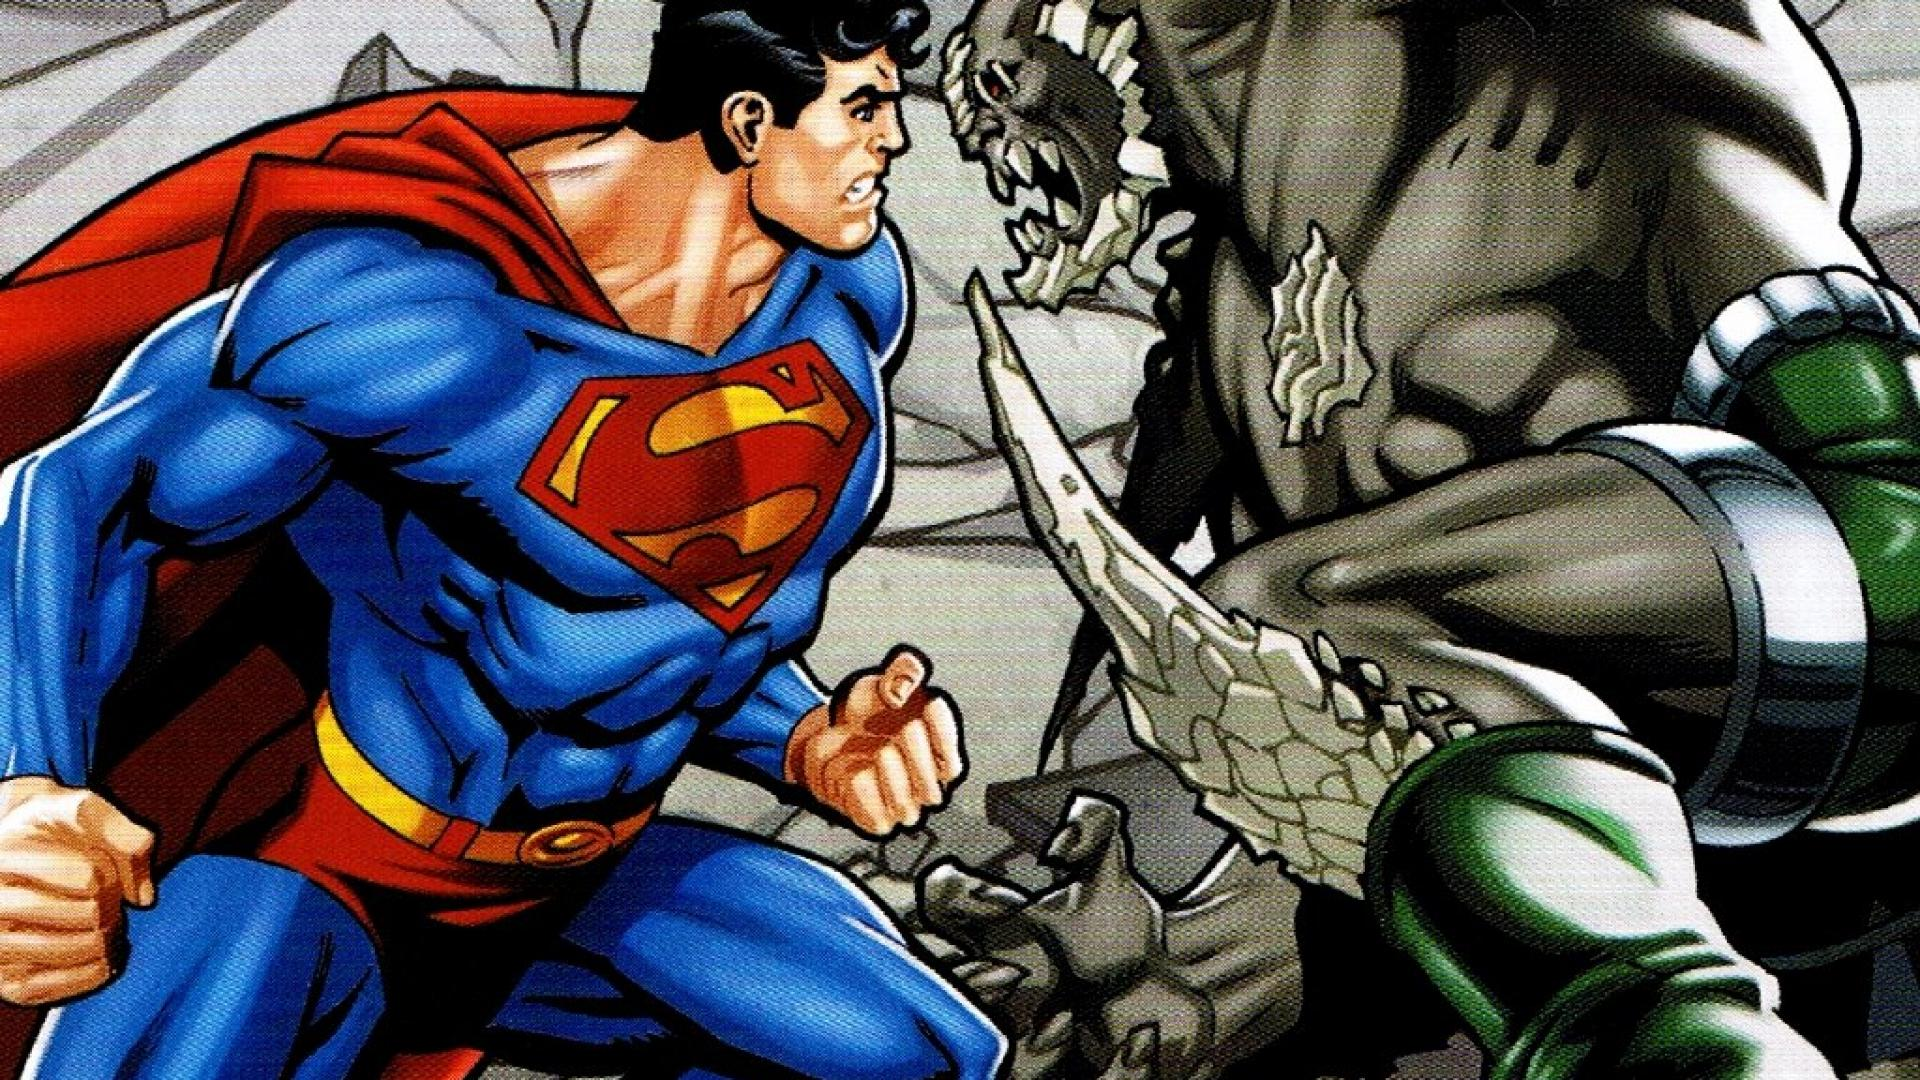 dc comics superman doomsday hd wallpaper   21432   HQ Desktop 1920x1080